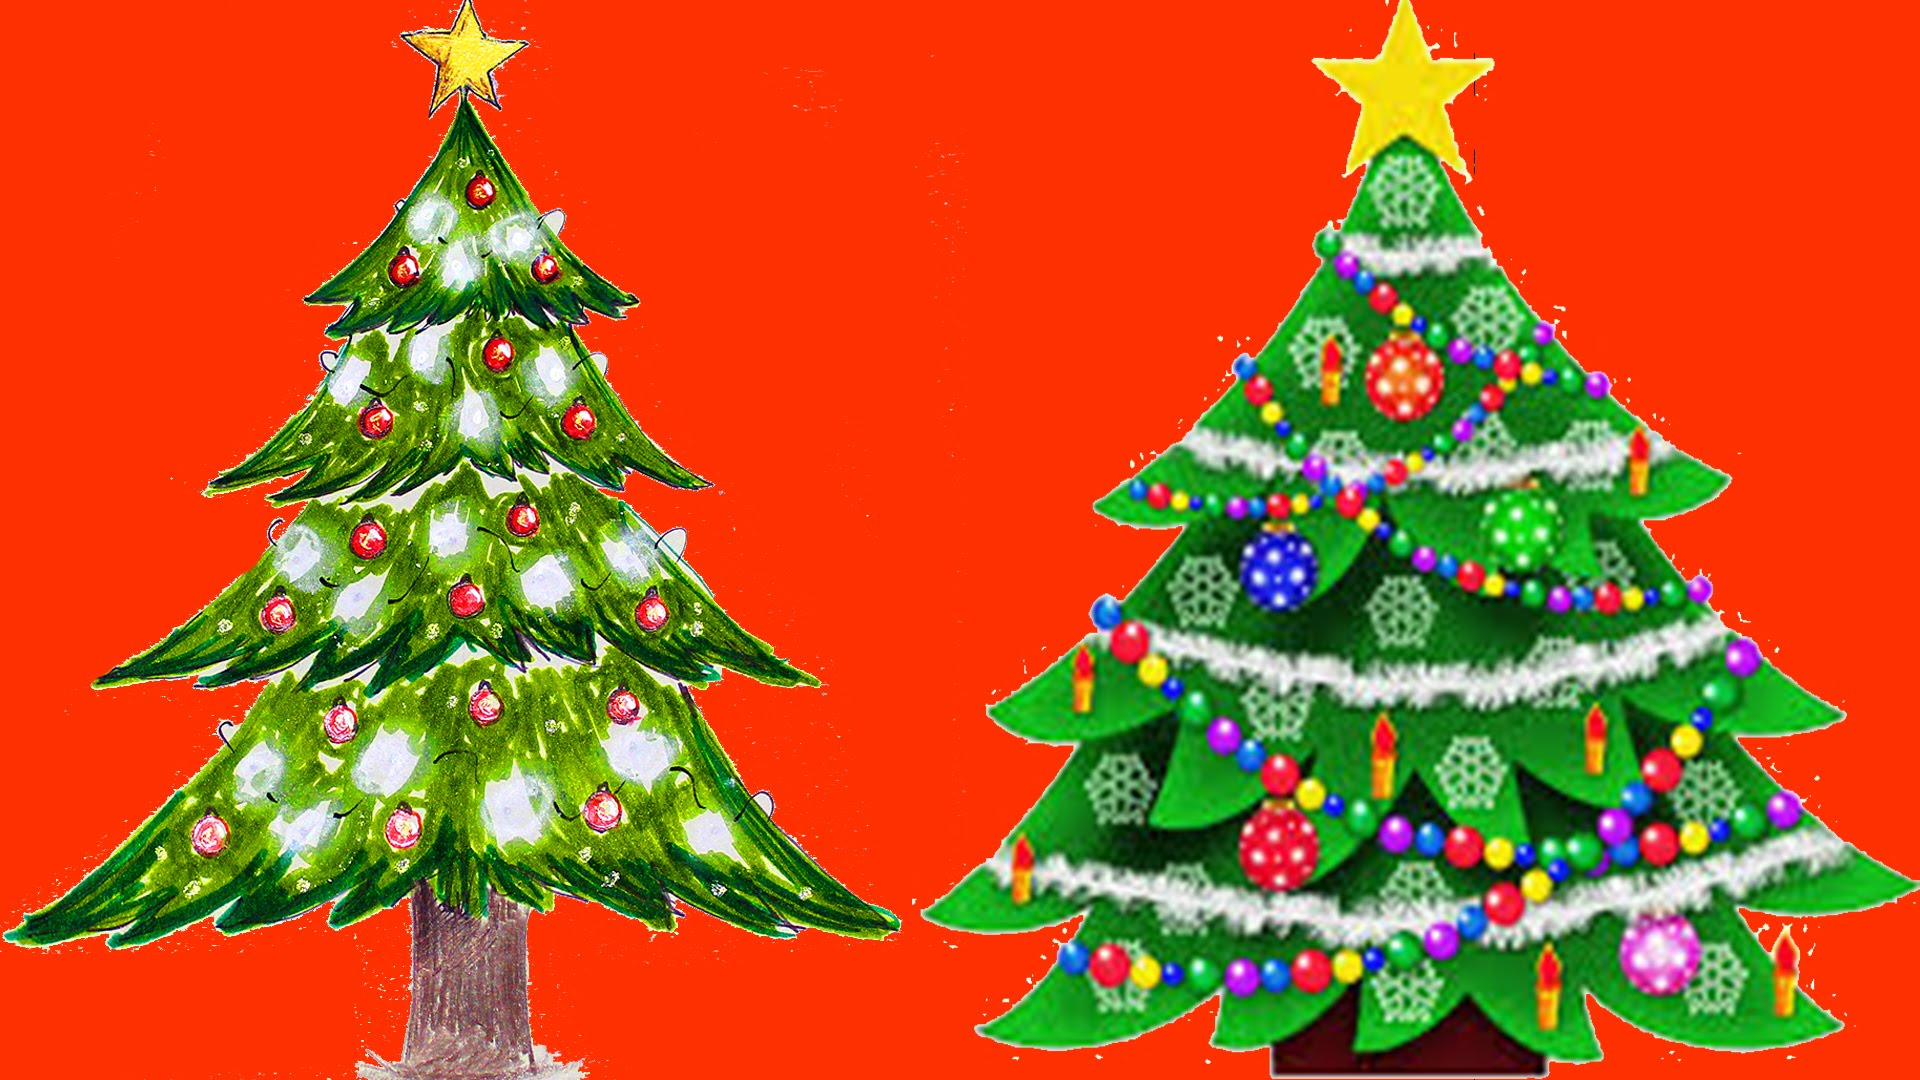 Christmas Tree Images Drawing at GetDrawings.com | Free for personal ...